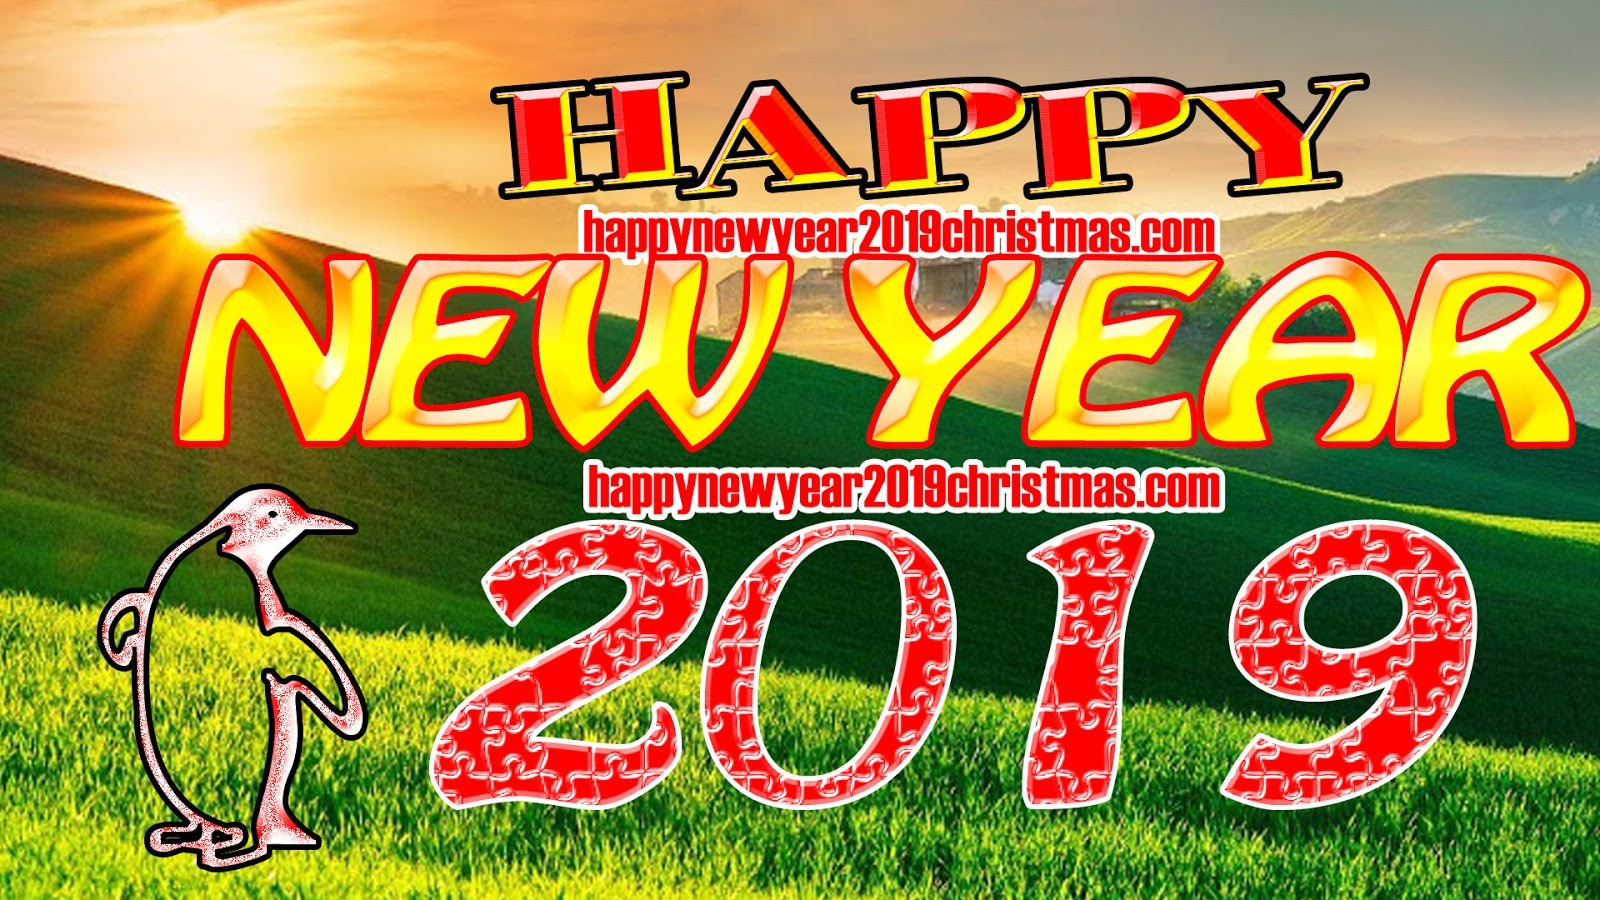 Happy New Year 2019 Wallpapers Images